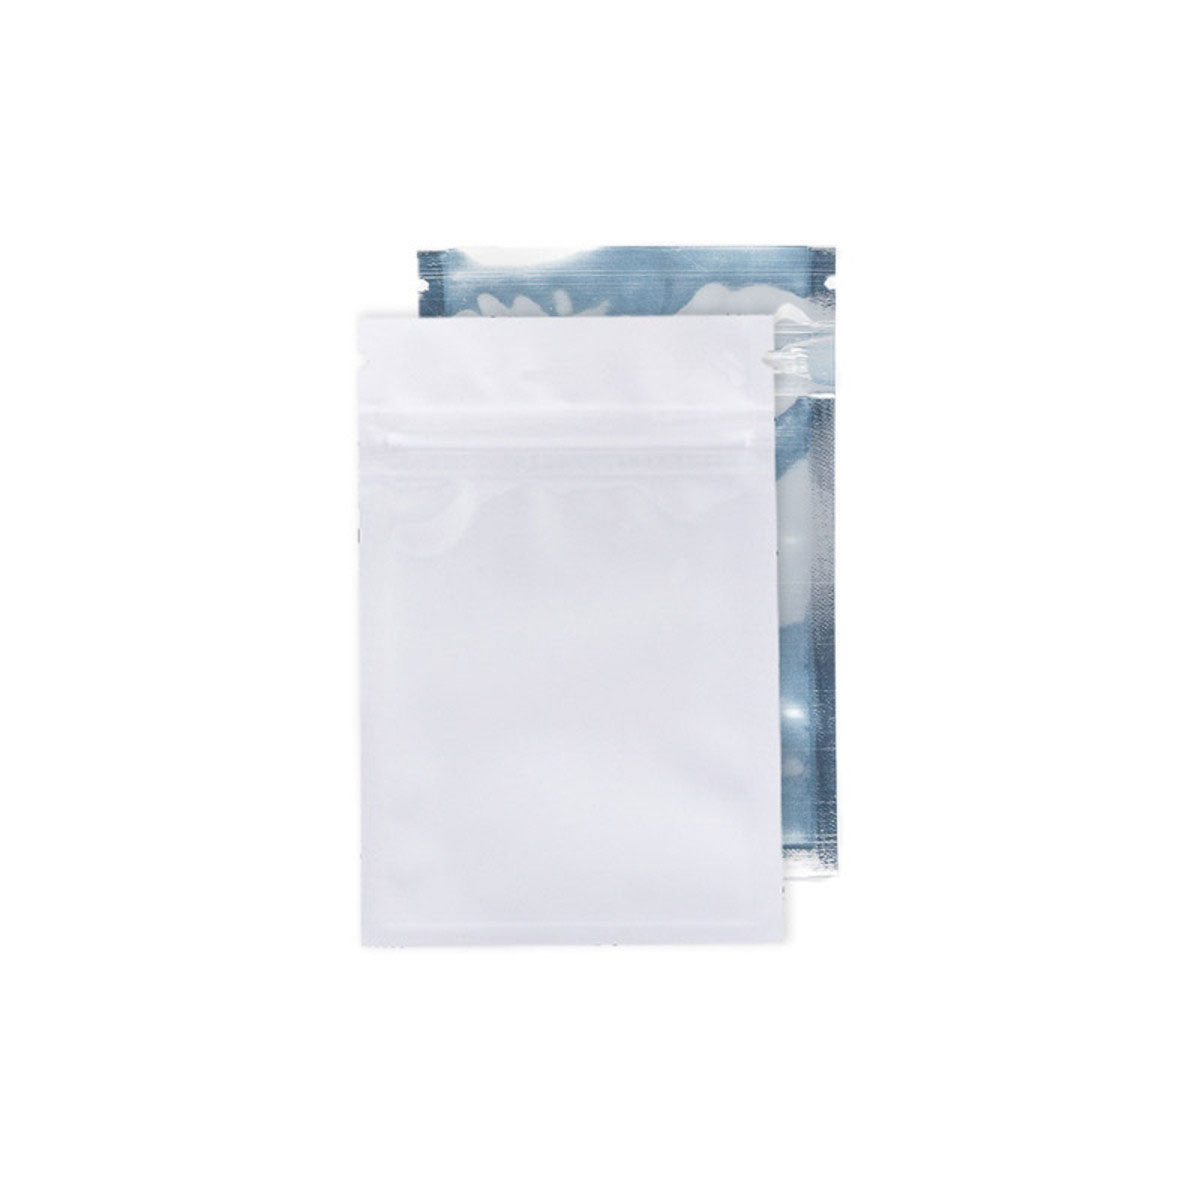 Gram White/clear Barrier Bags (100 Qty.)